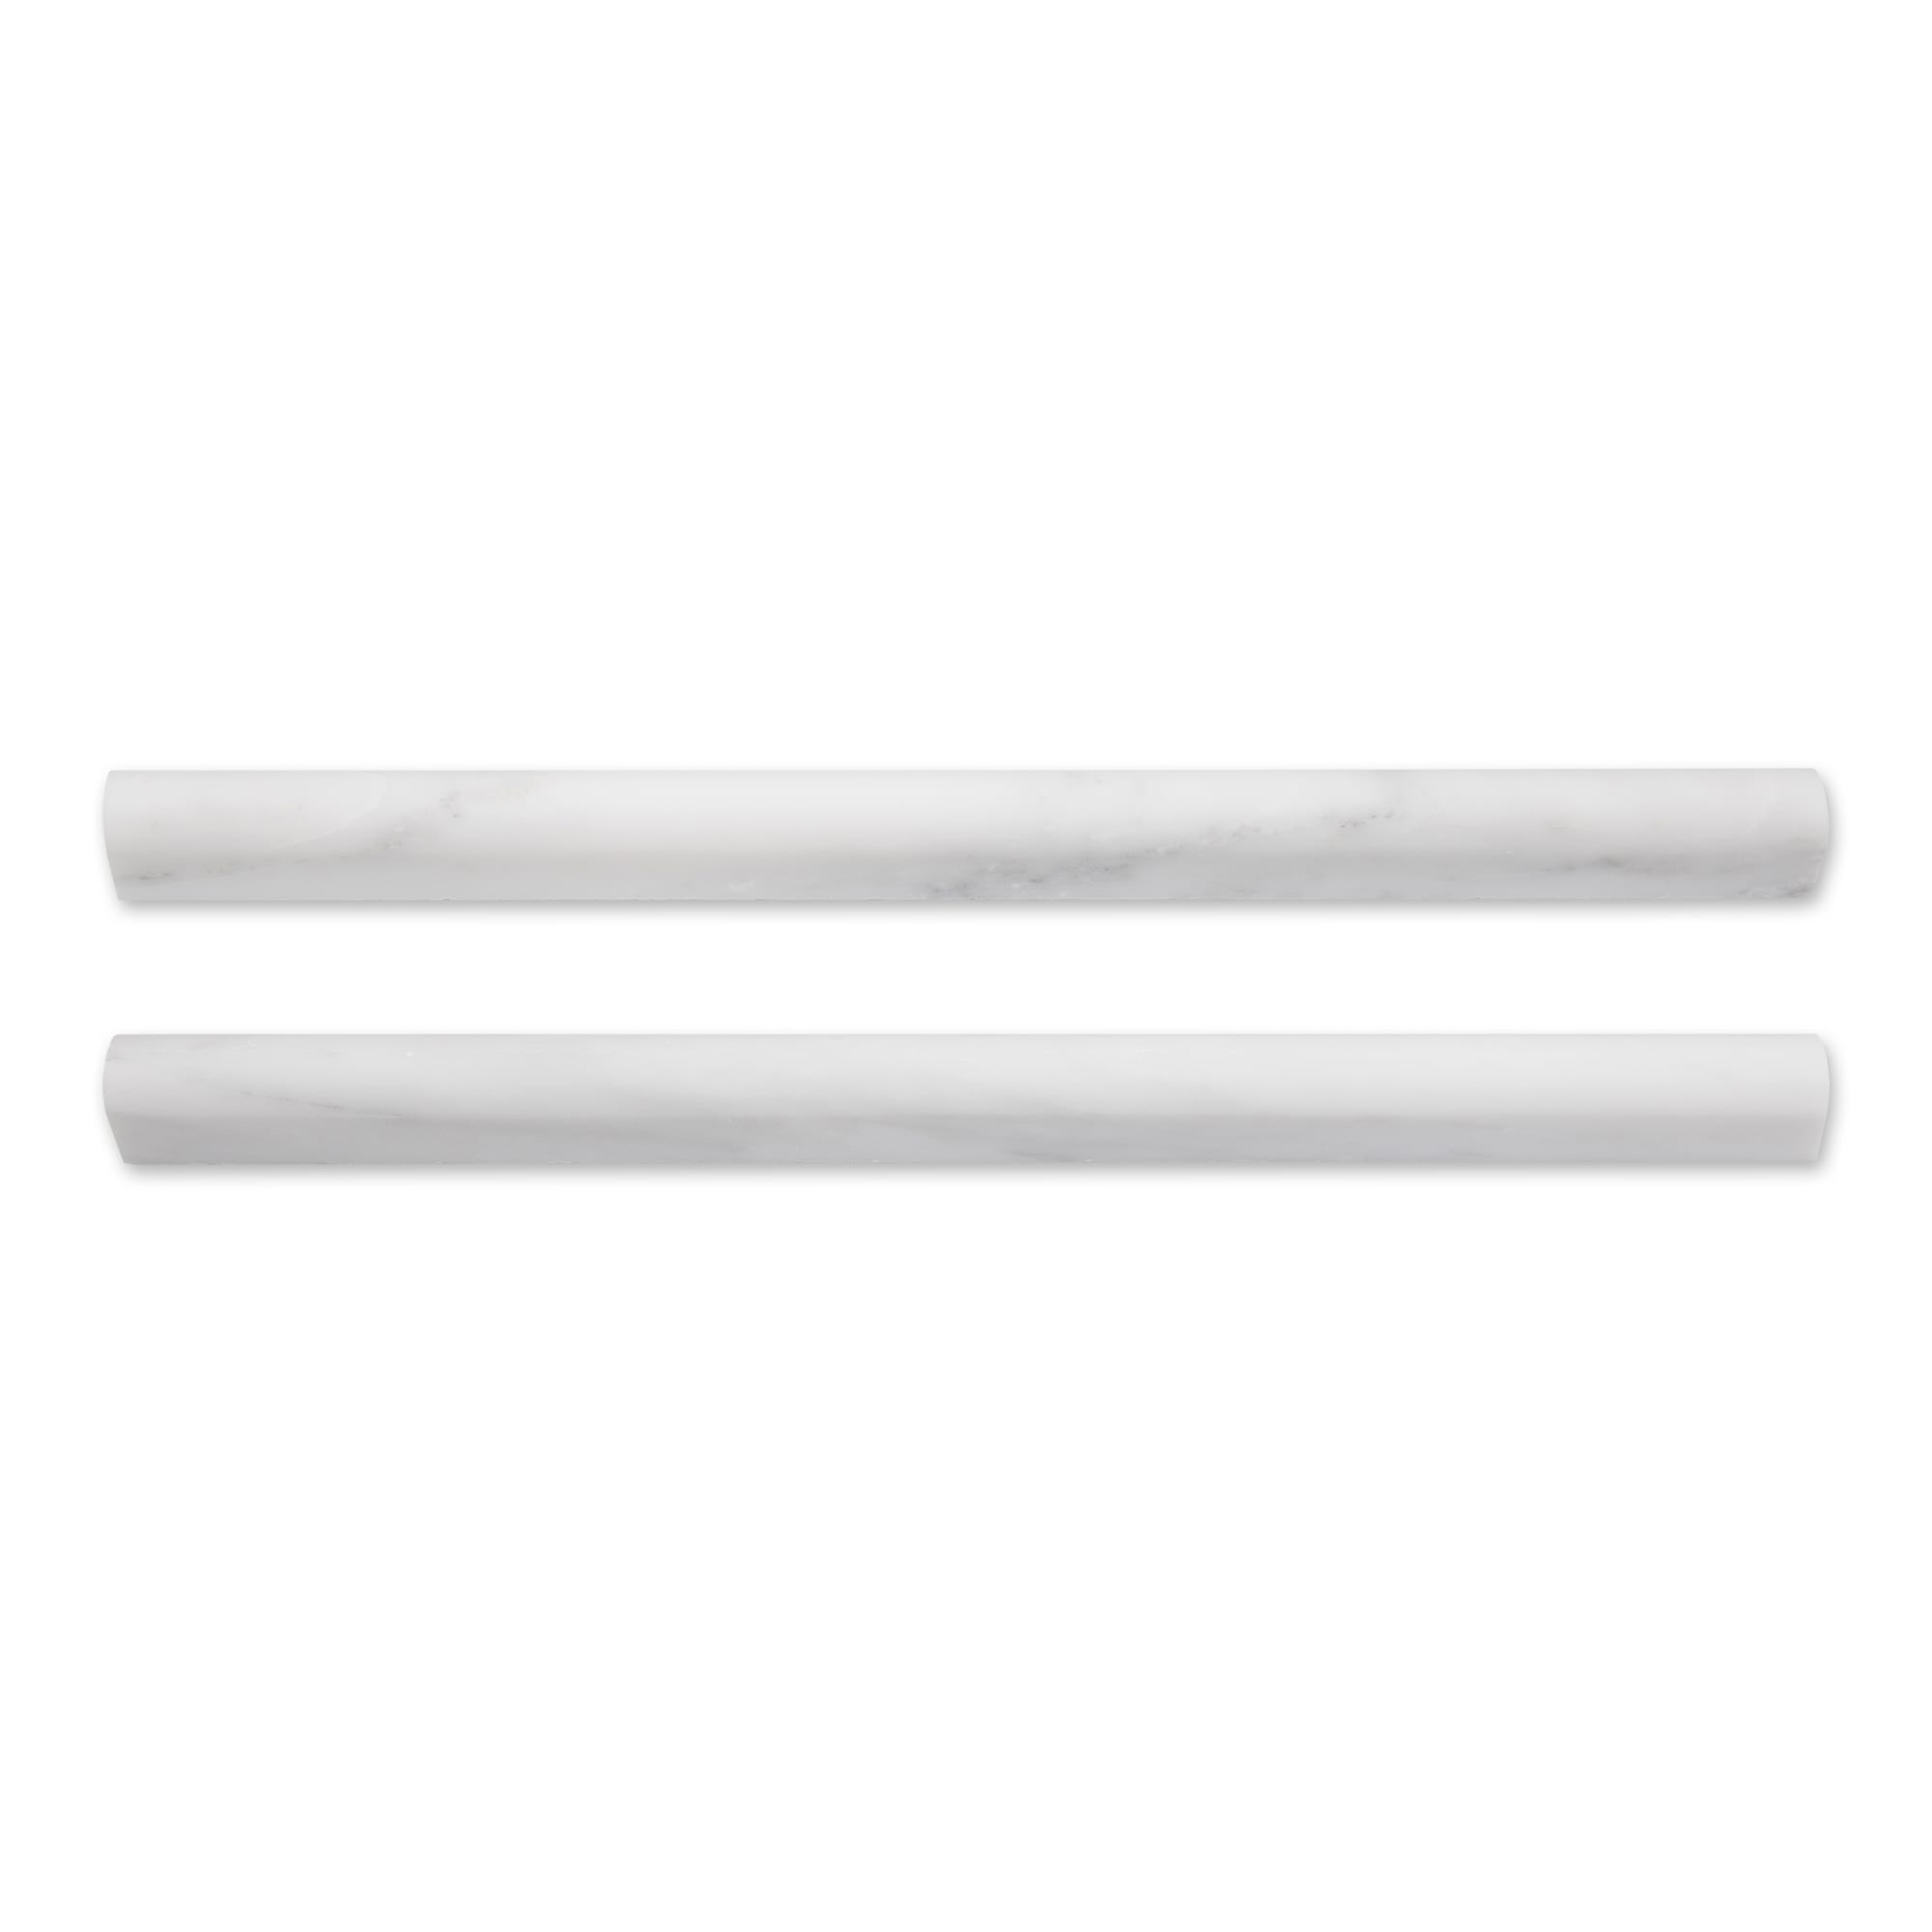 Casablanca Carrara Marble - Honed - Pencil Trim 3/4